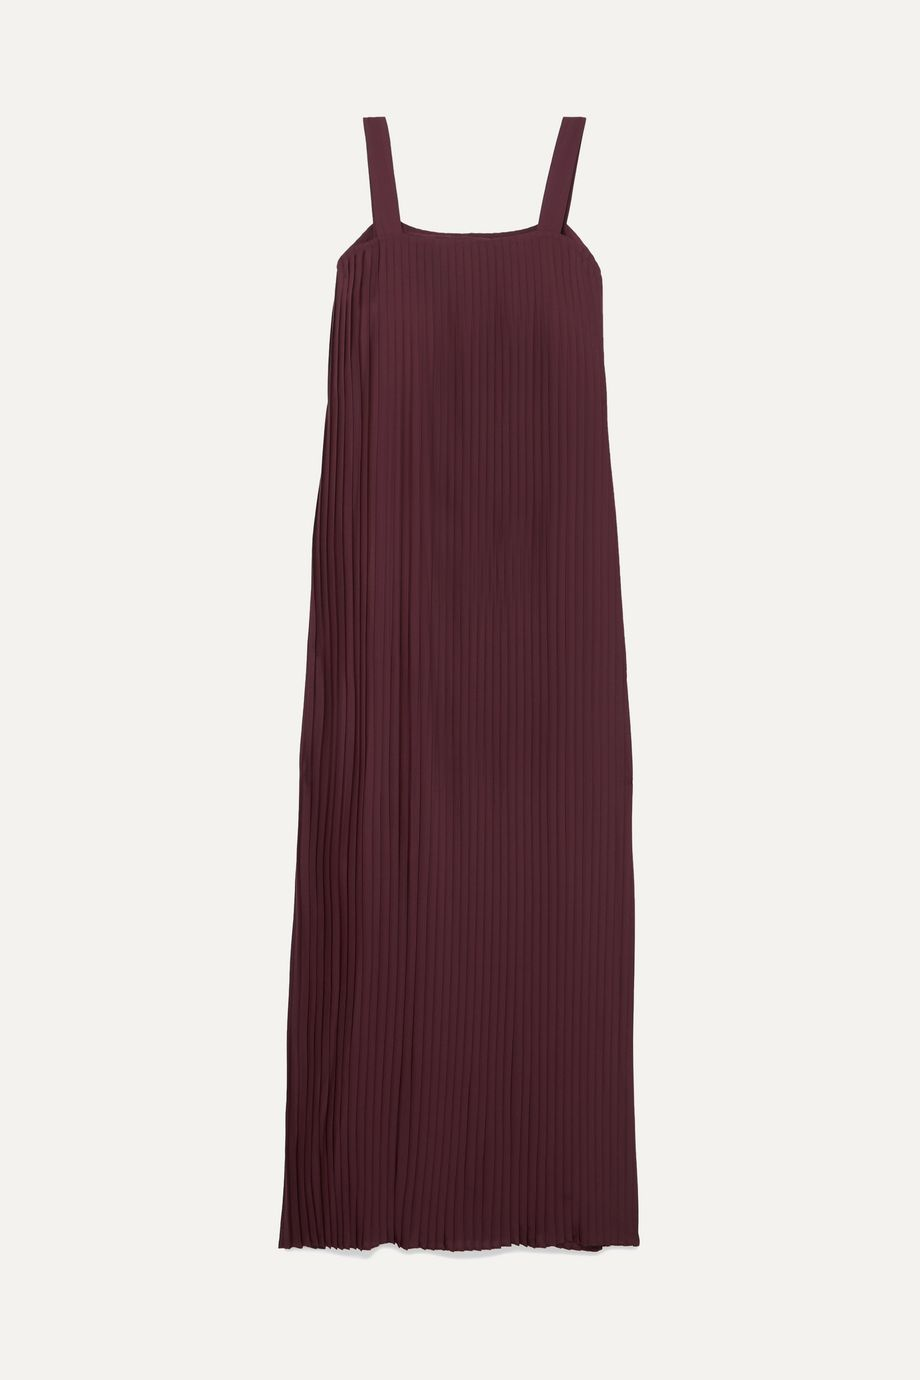 LE 17 SEPTEMBRE Pleated crepe de chine maxi dress